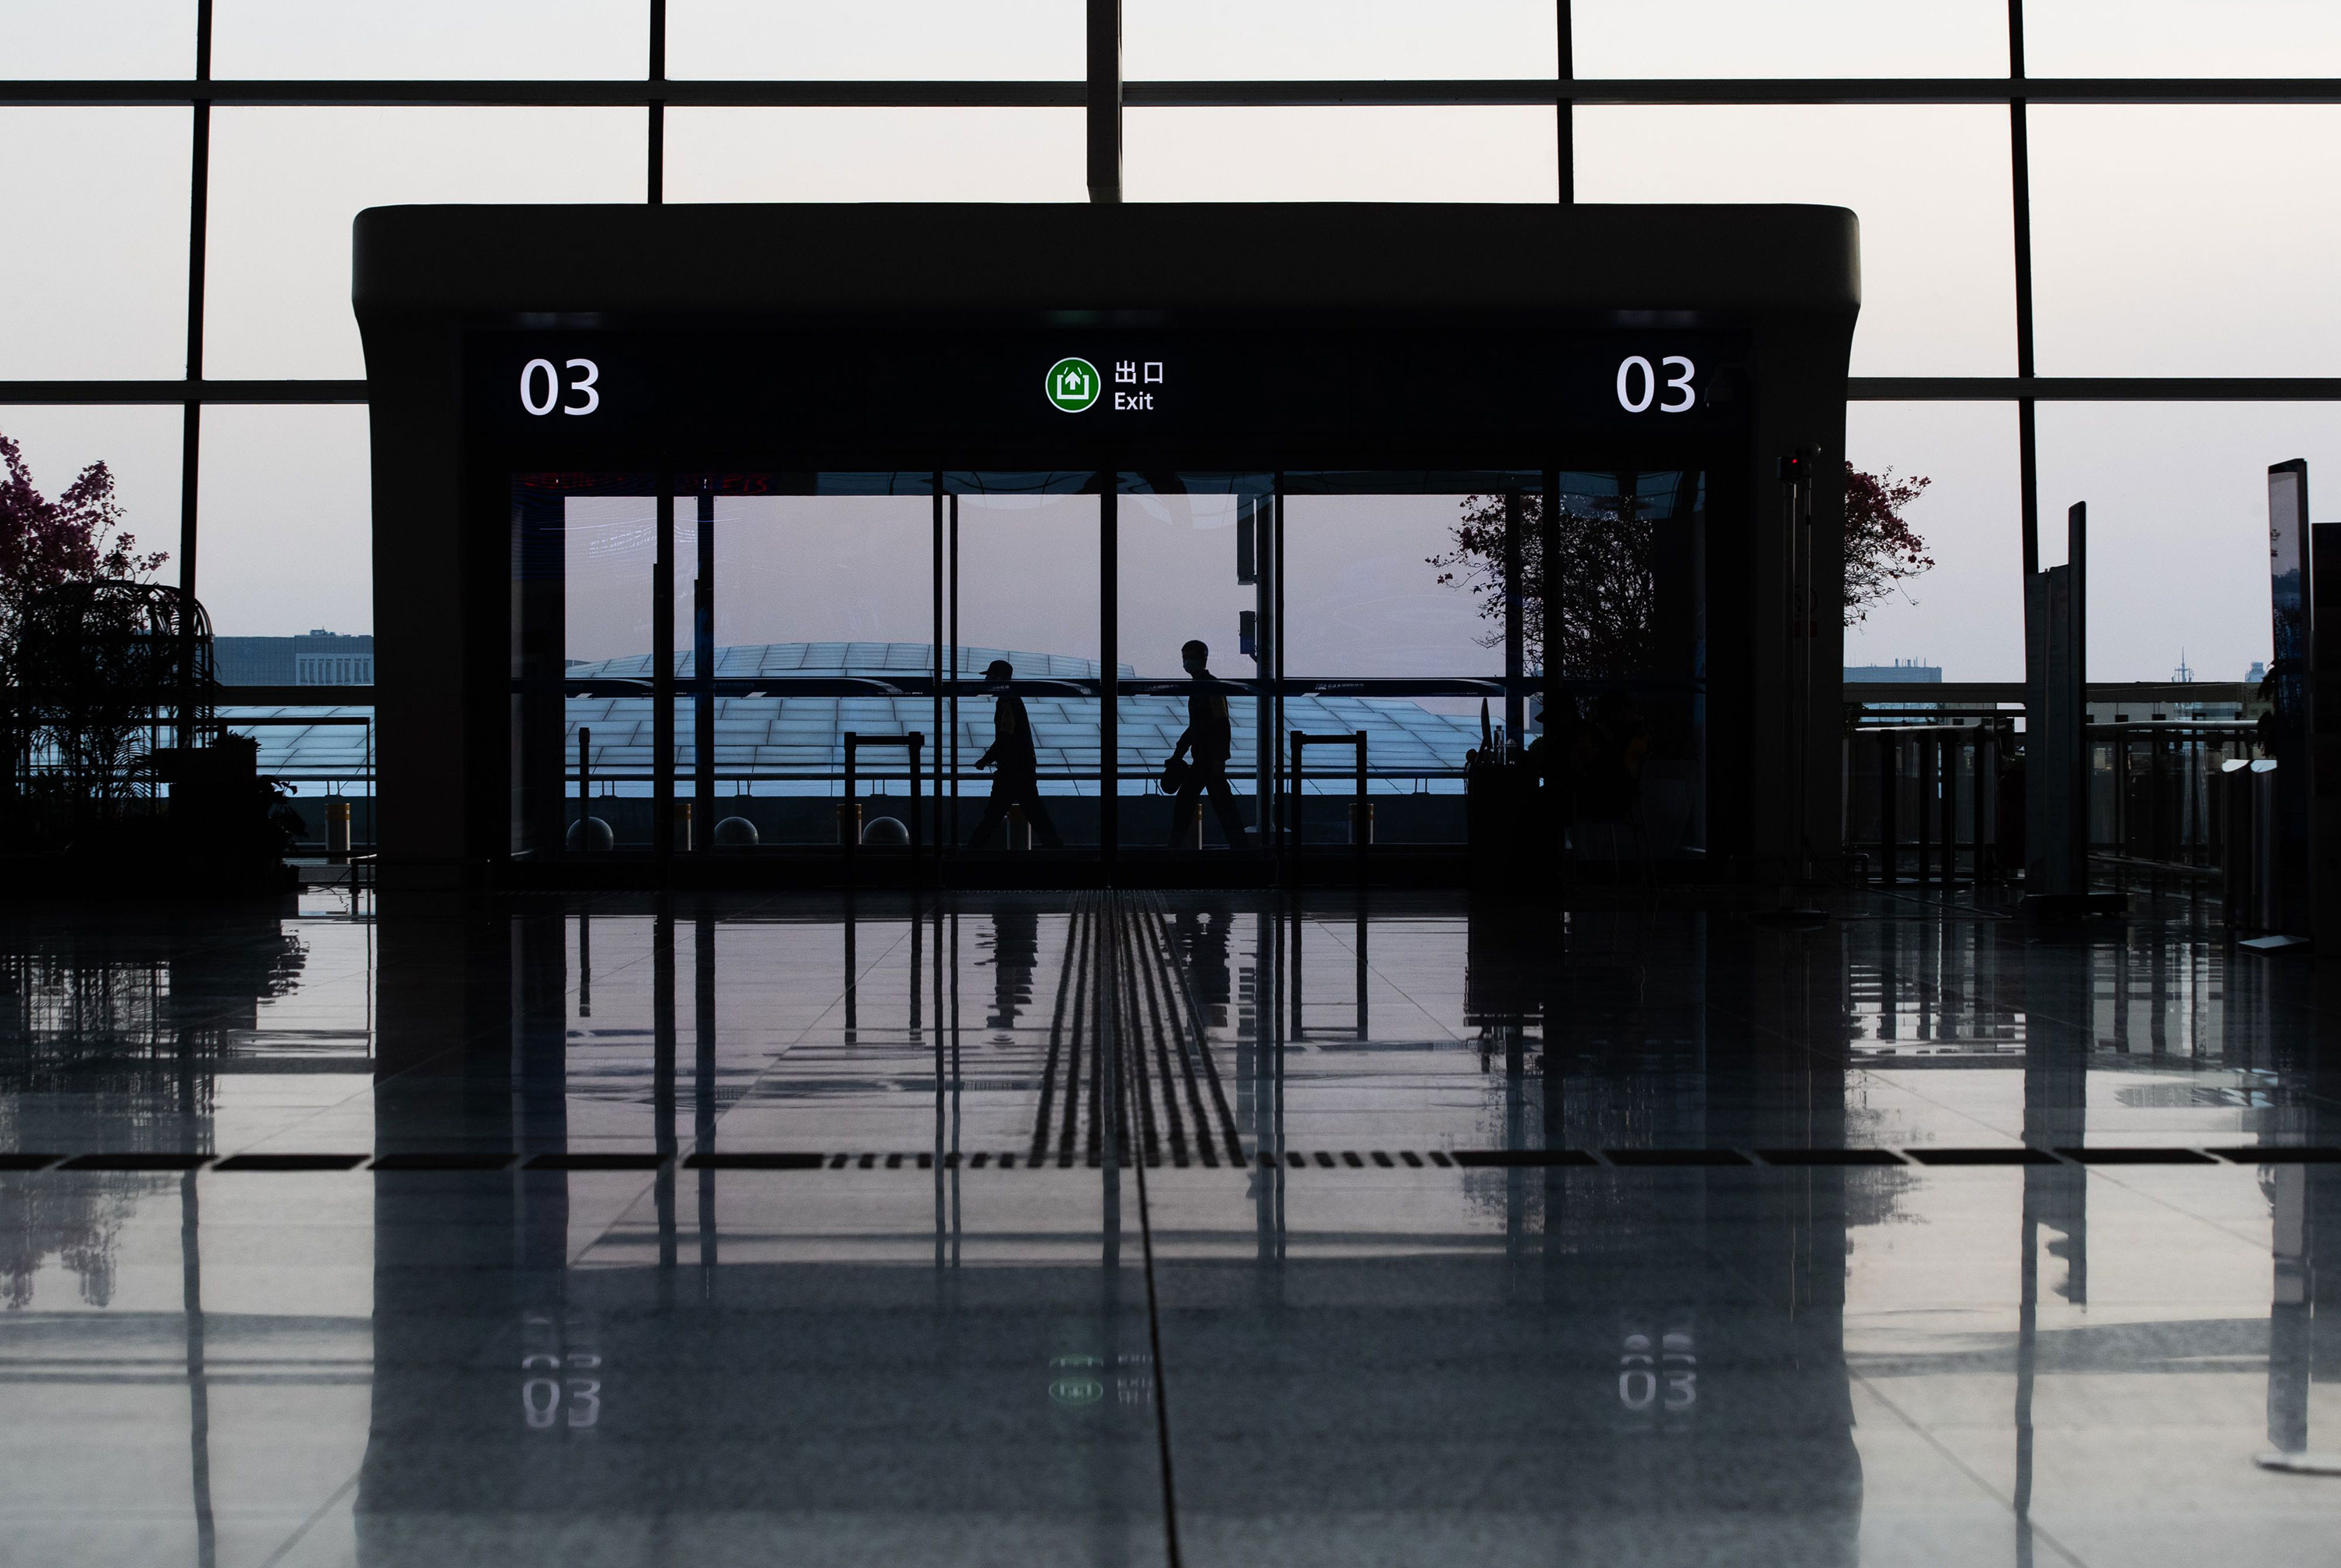 Workers walk through the nearly empty Wuhan Tianhe airport in Wuhan, China on March 17.